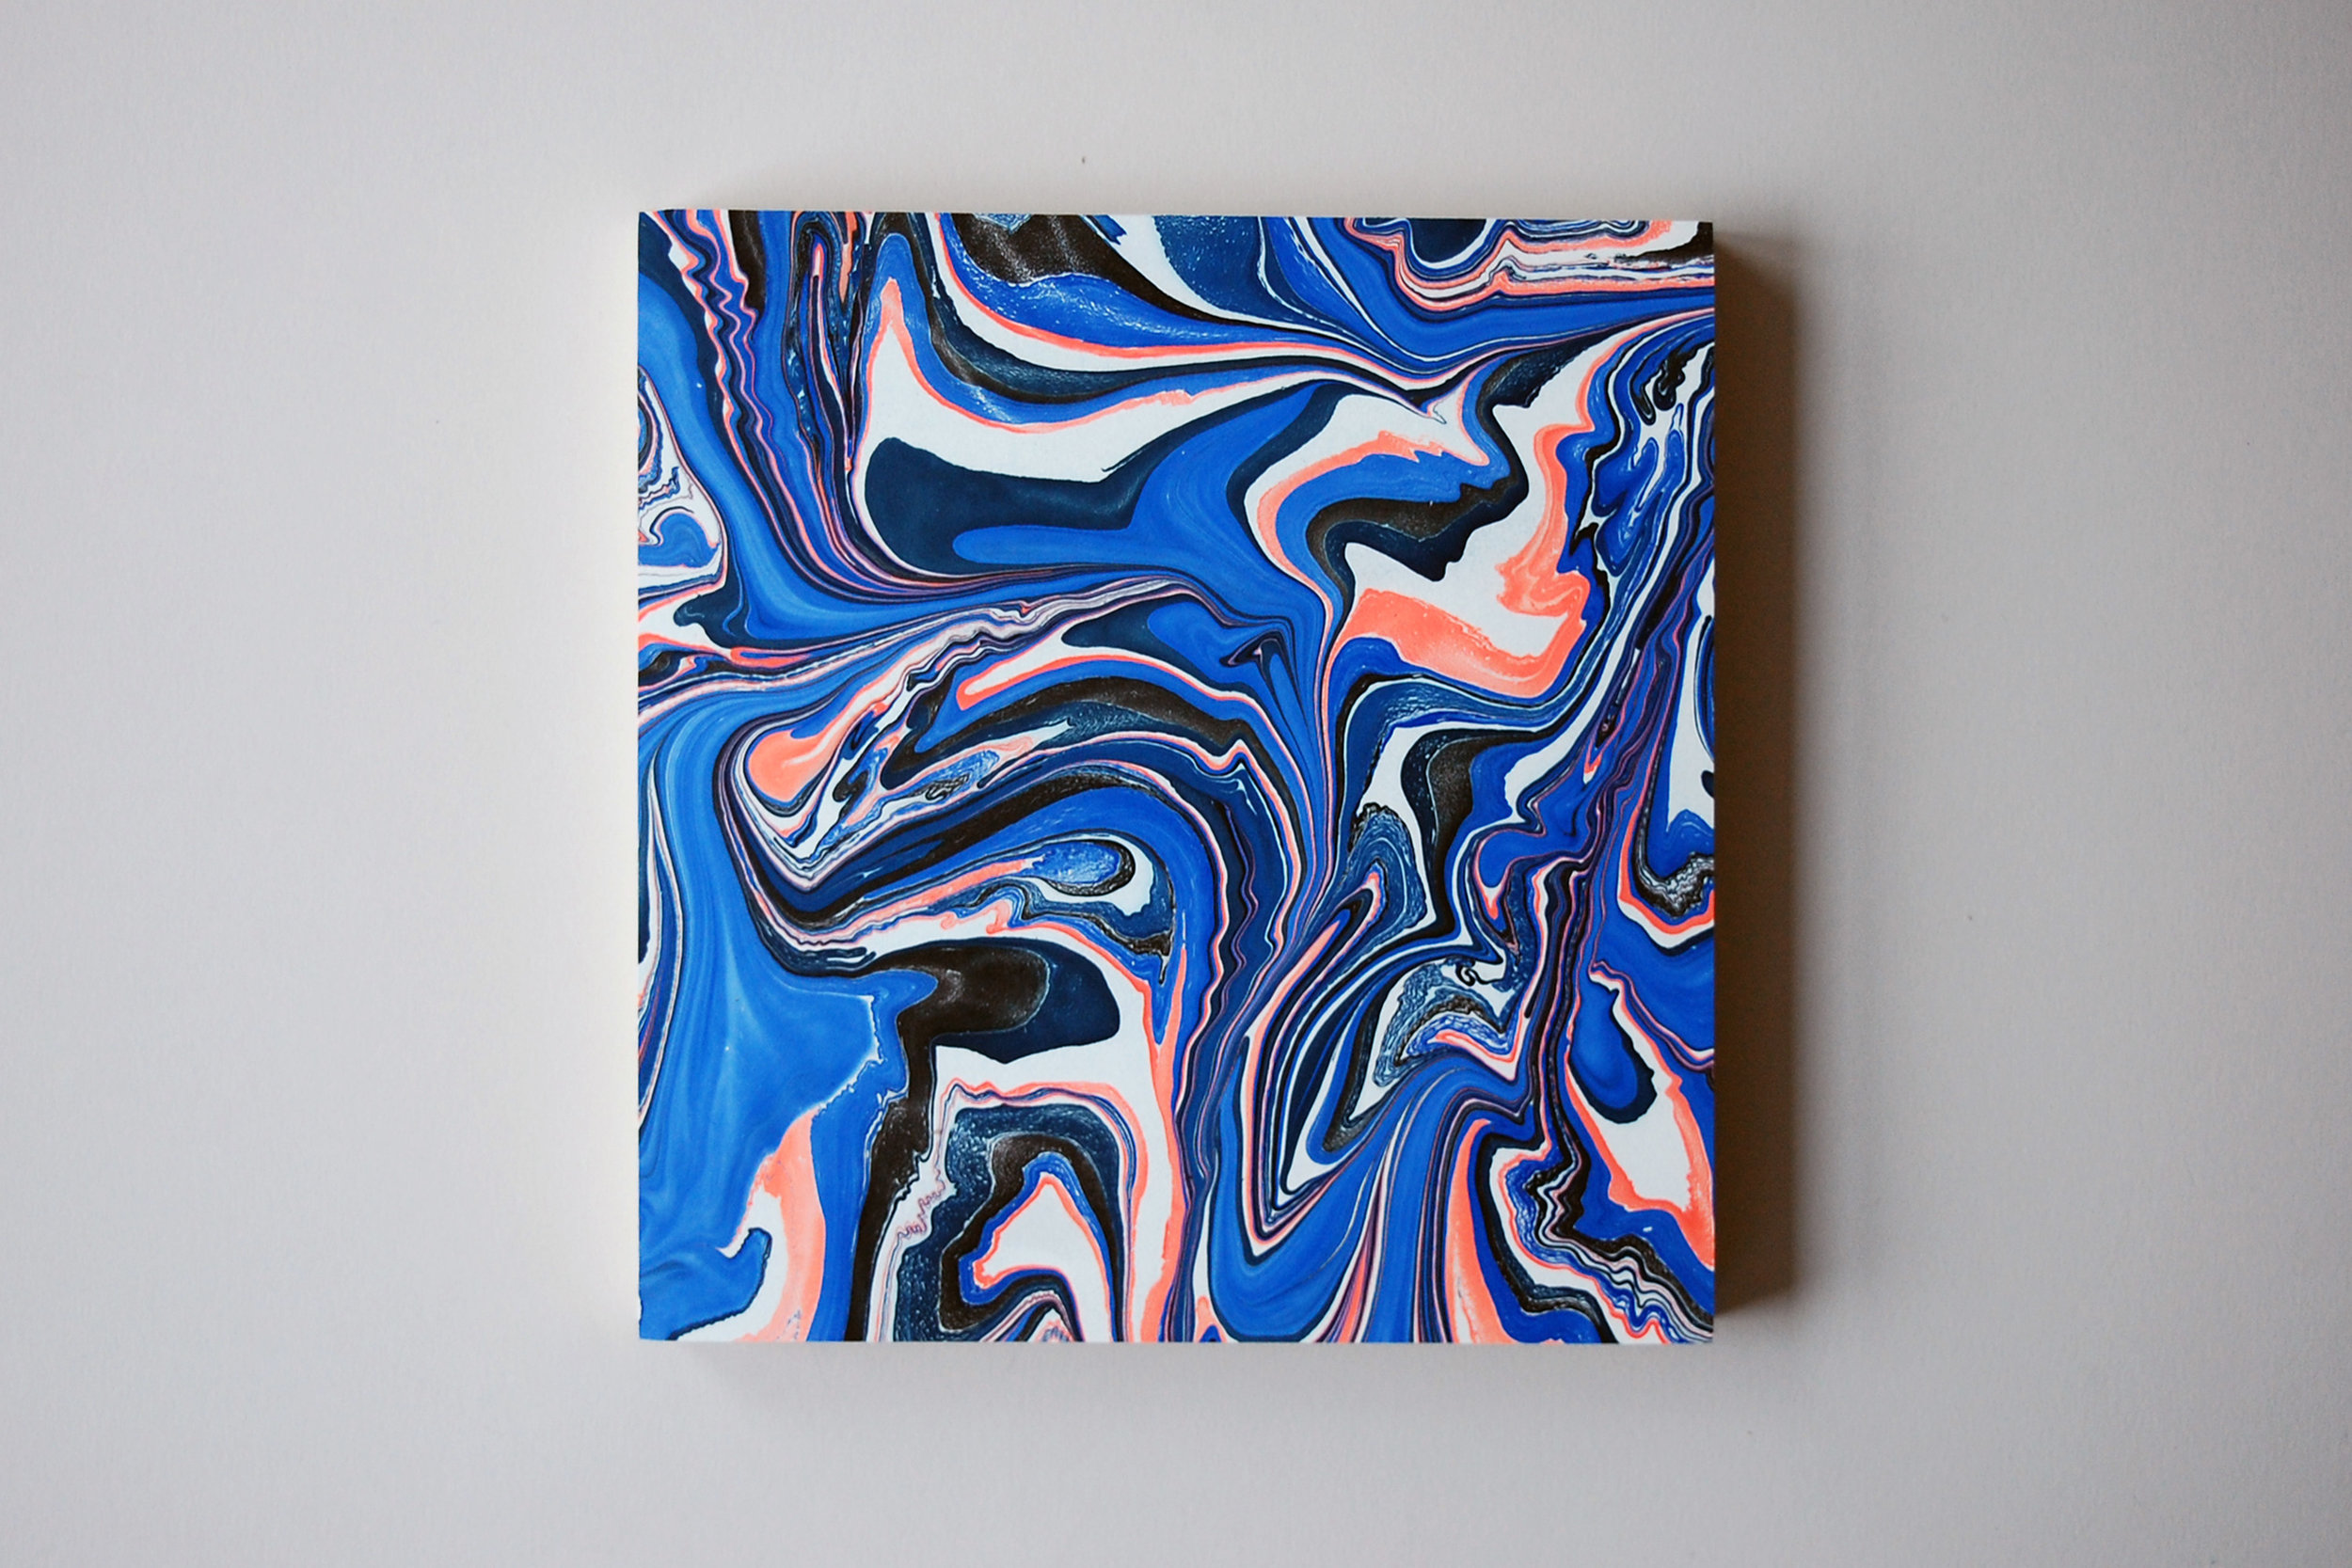 marbled panel ix by natalie stopka